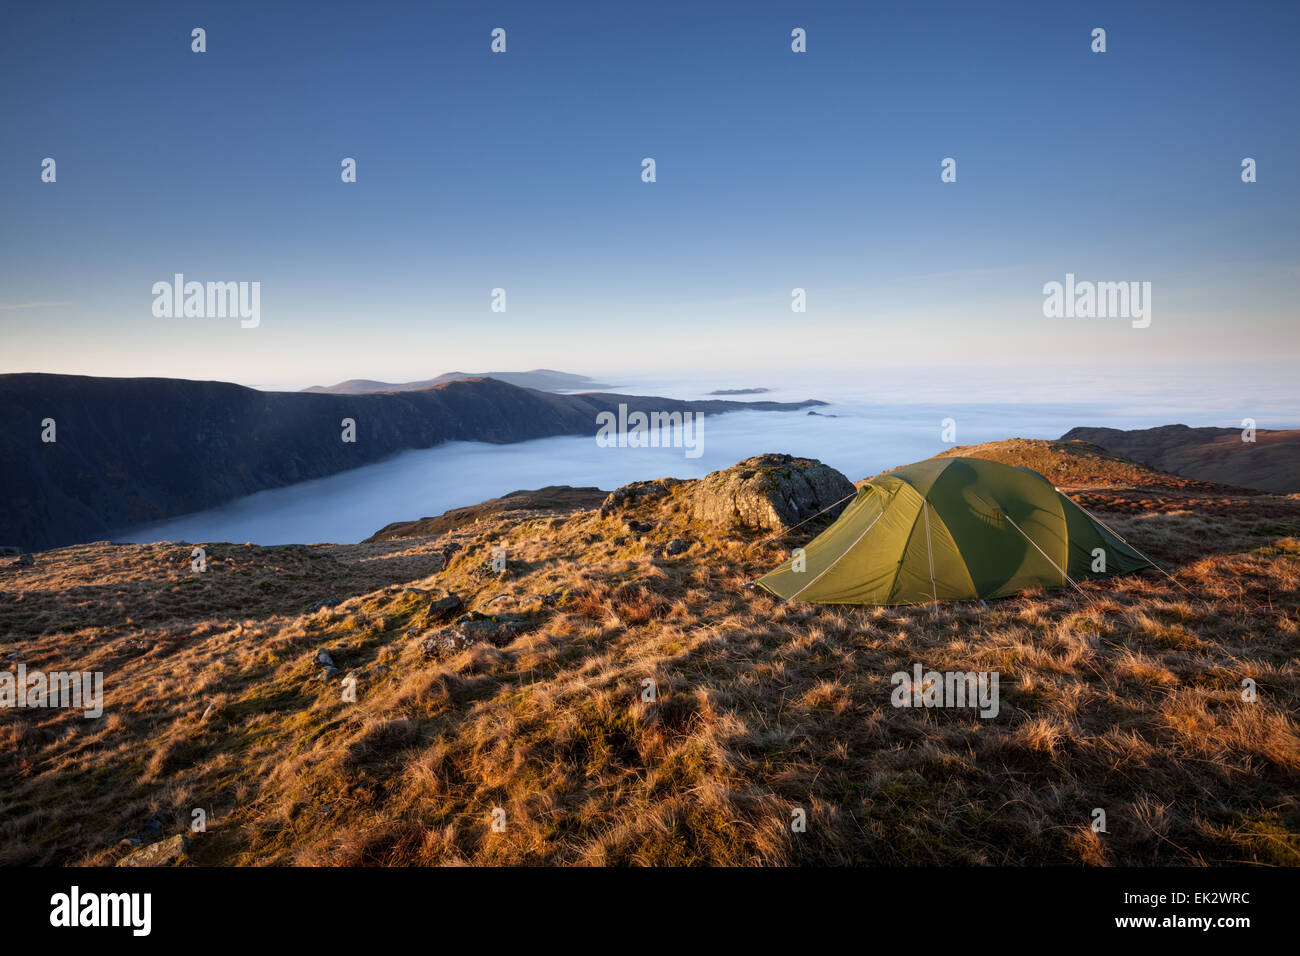 Sunrise and cloud inversion over Wastwater from our wild camping tent pitch on top of Middle Fell in the Lake District - Stock Image